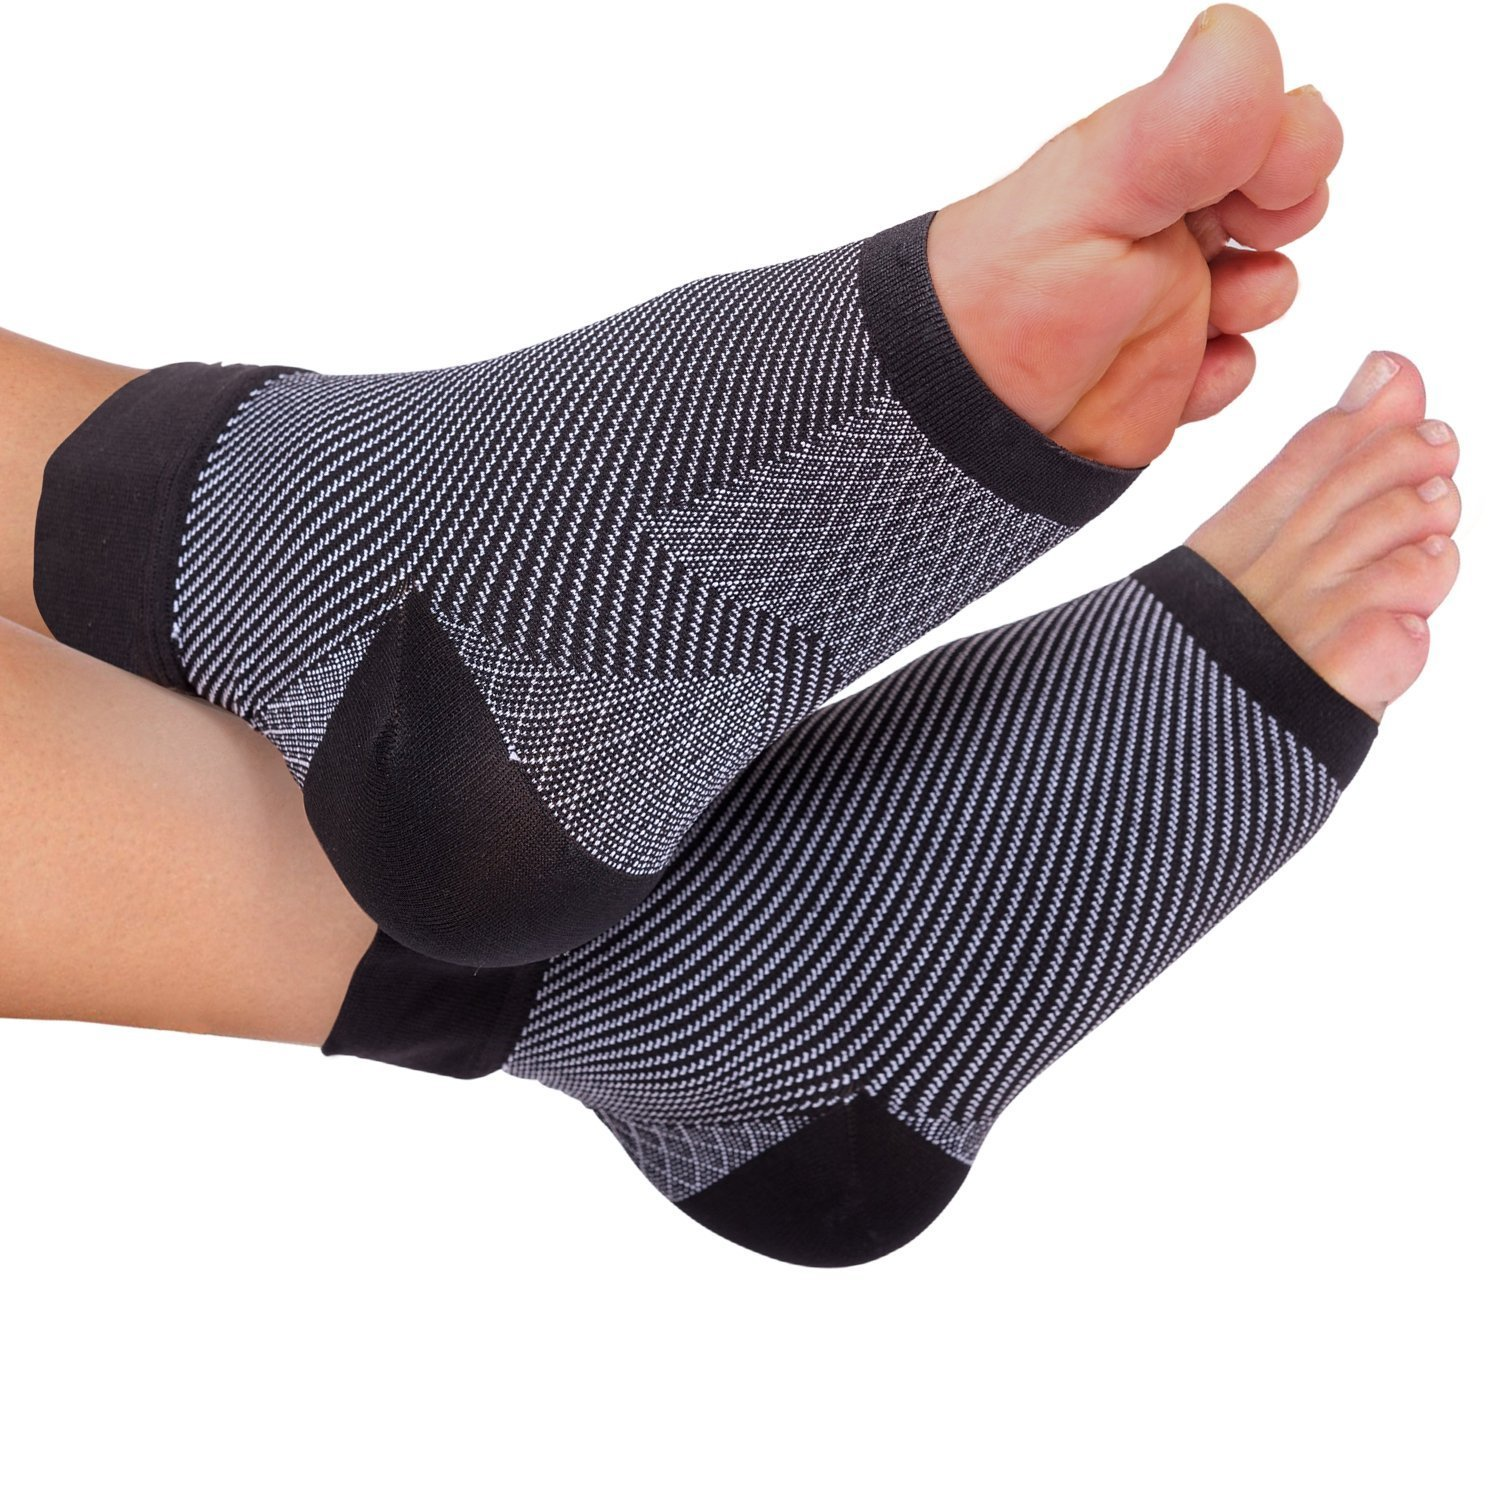 Bitly FBA_PFB_S_1101 Plantar Fasciitis Socks (1 Pair) Premium Ankle Support Foot Compression Sleeve (Small)